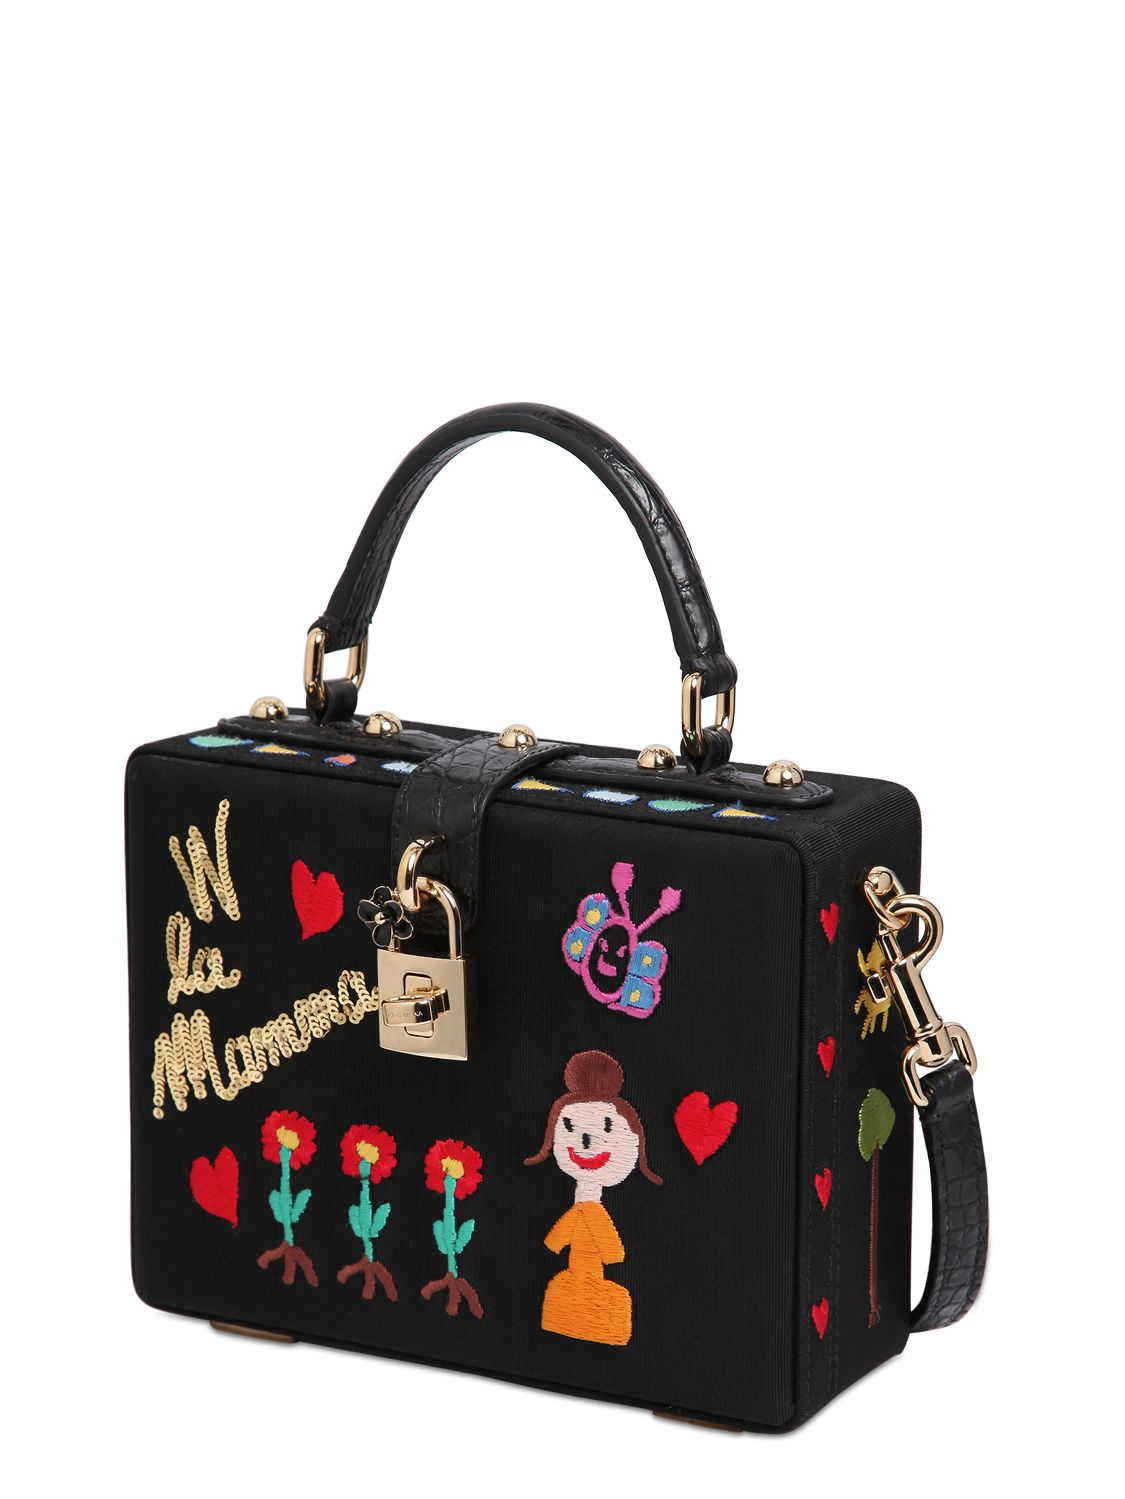 7abc65a531b4 Lyst - Dolce   Gabbana Dolce Box Embroidered Grosgrain Bag in Black